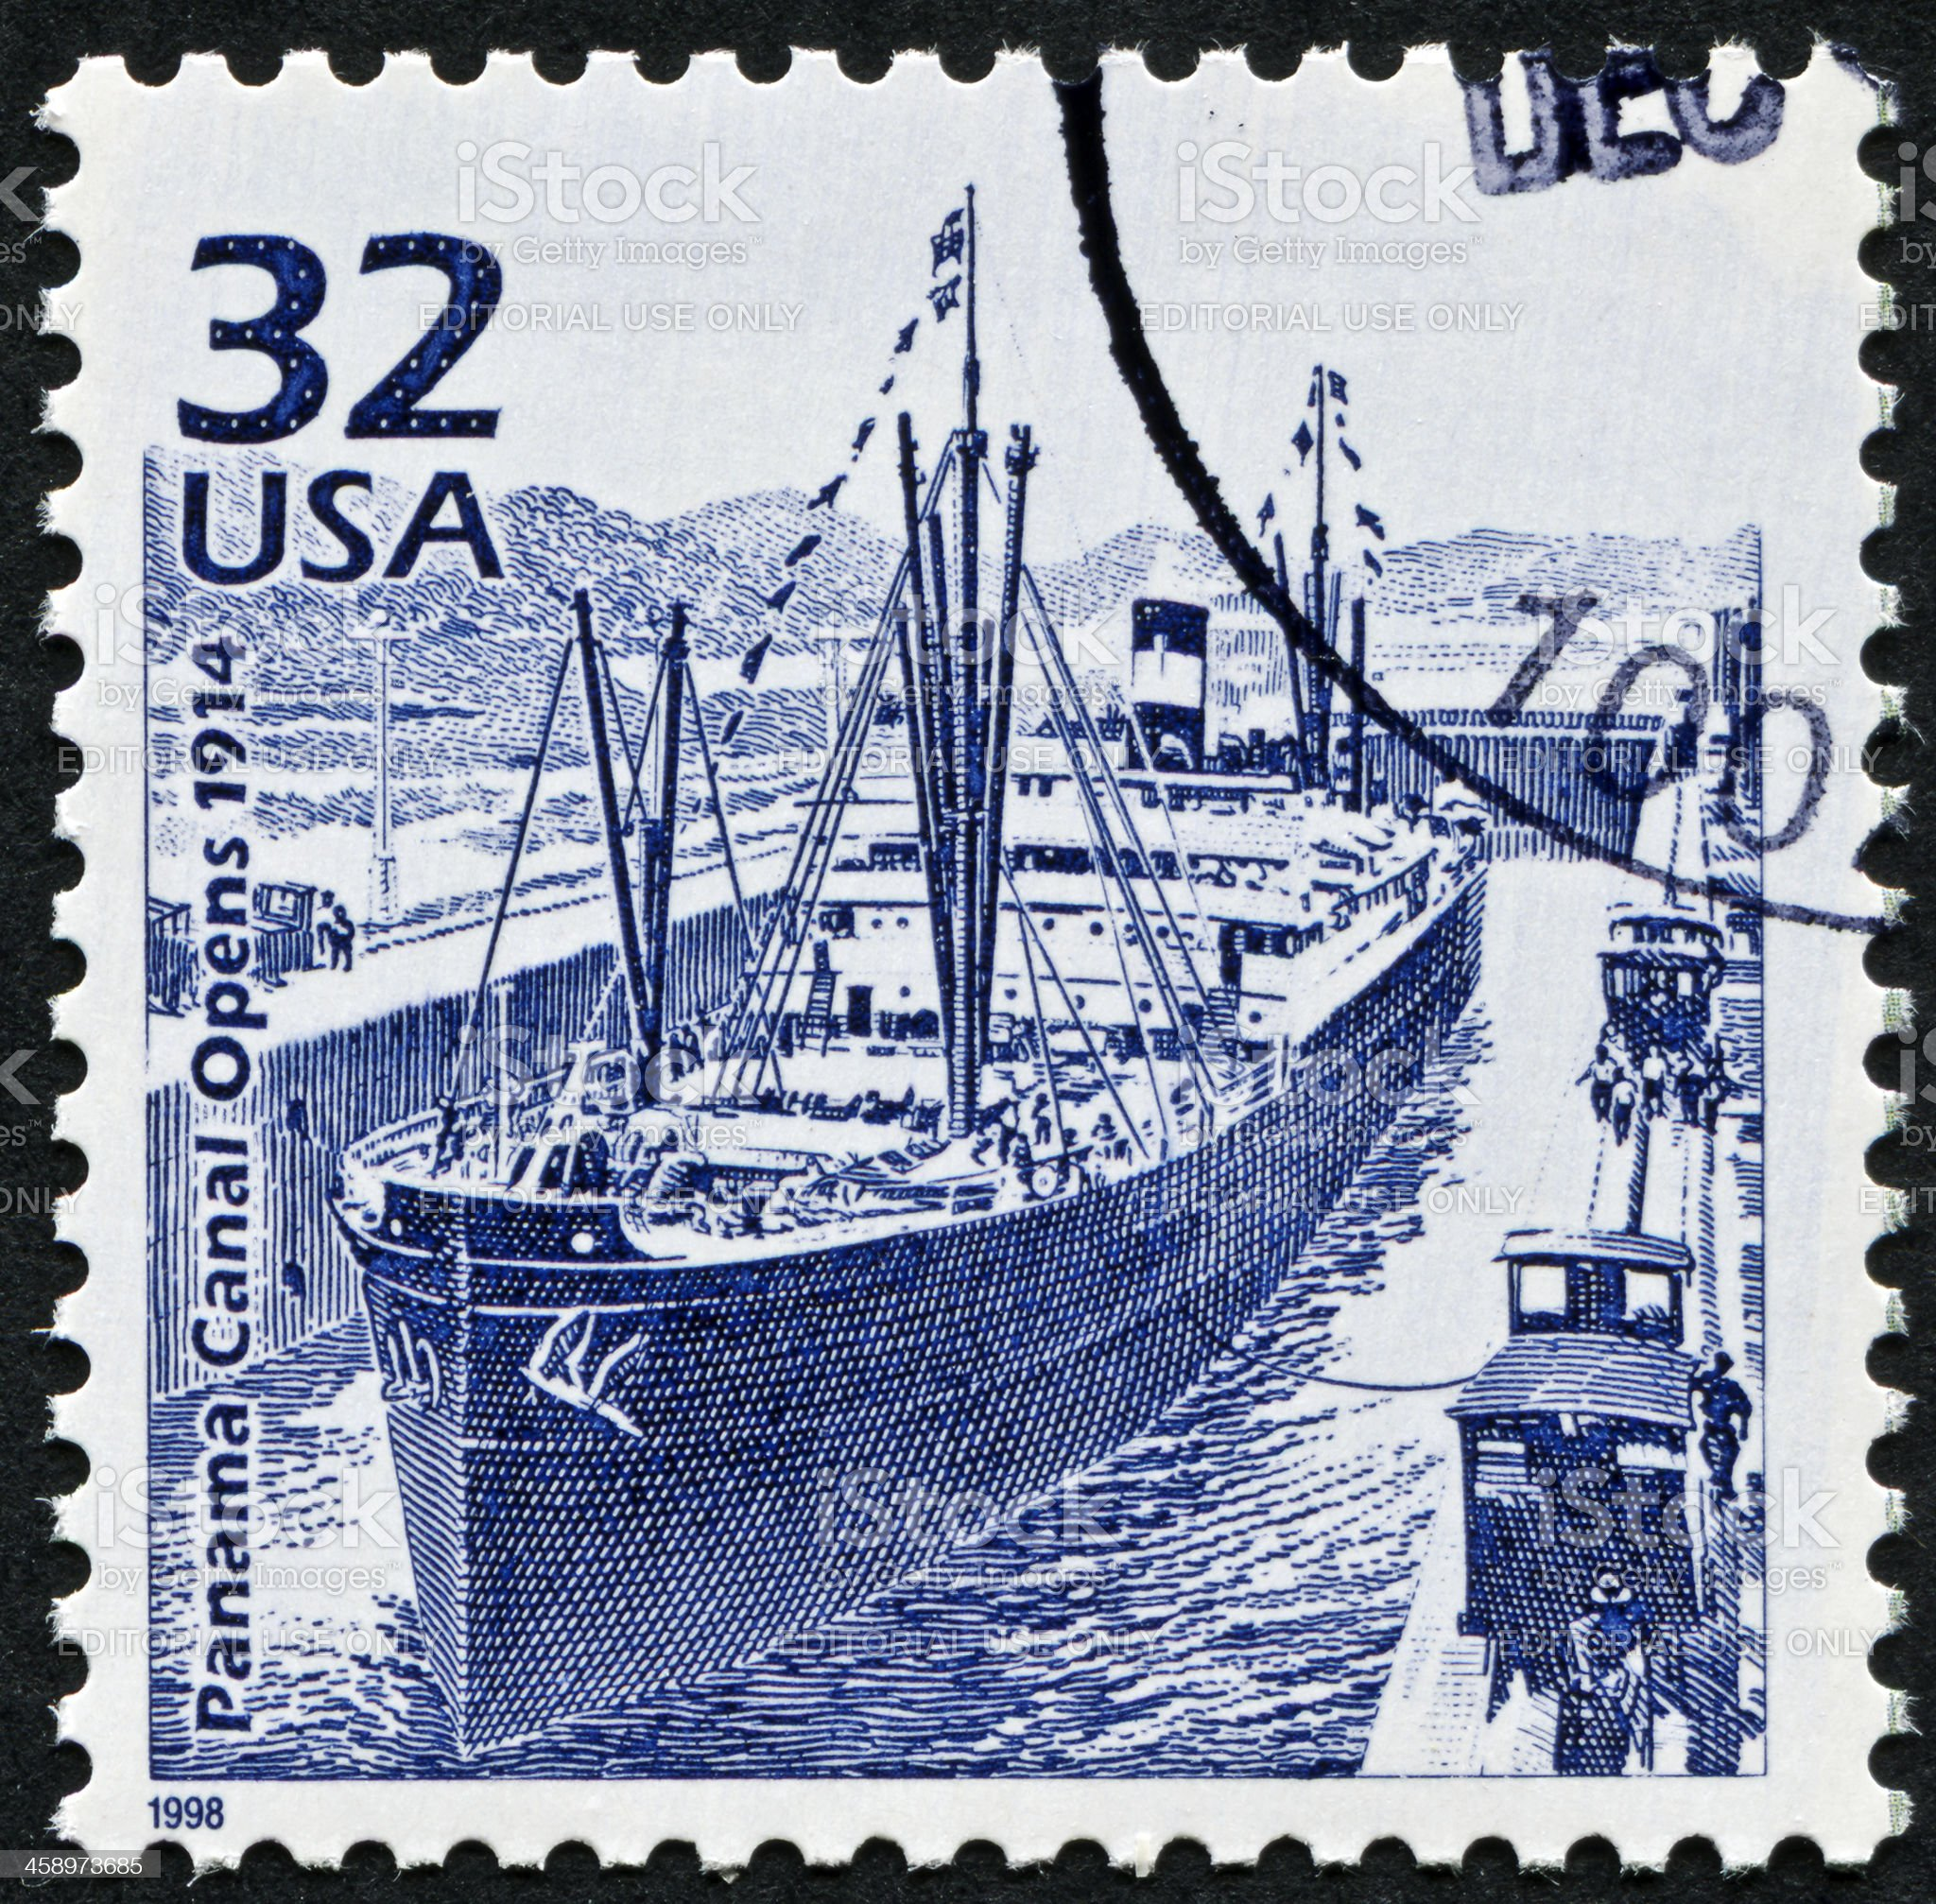 Panama Canal Stamp royalty-free stock photo